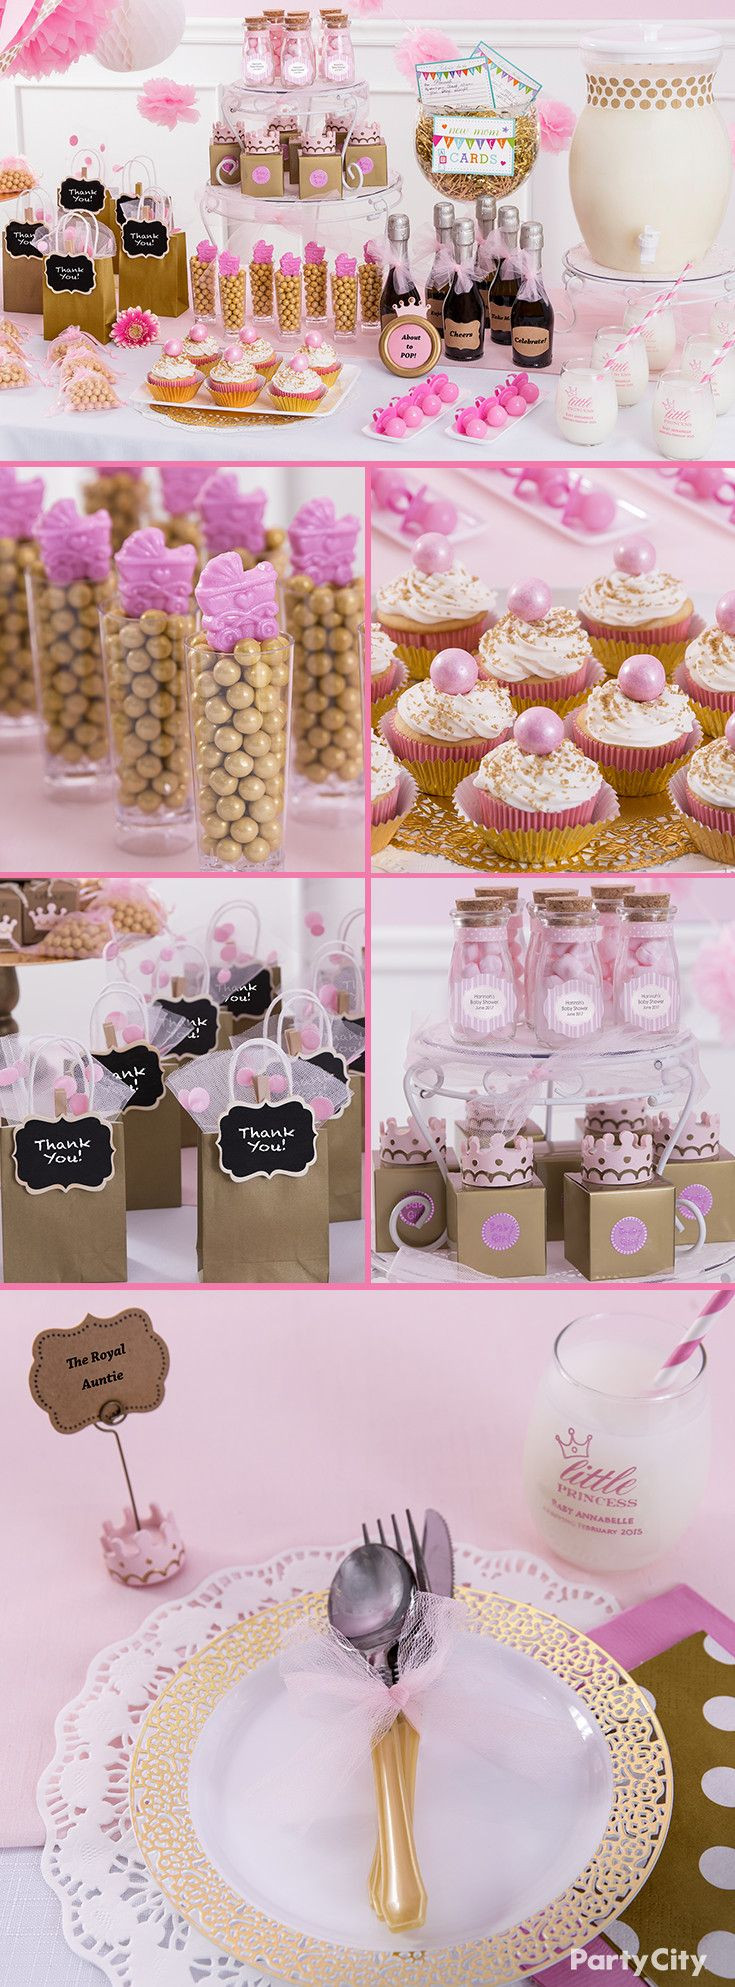 Party City Baby Shower Themes For A Girl  Pin on Baby Shower Ideas